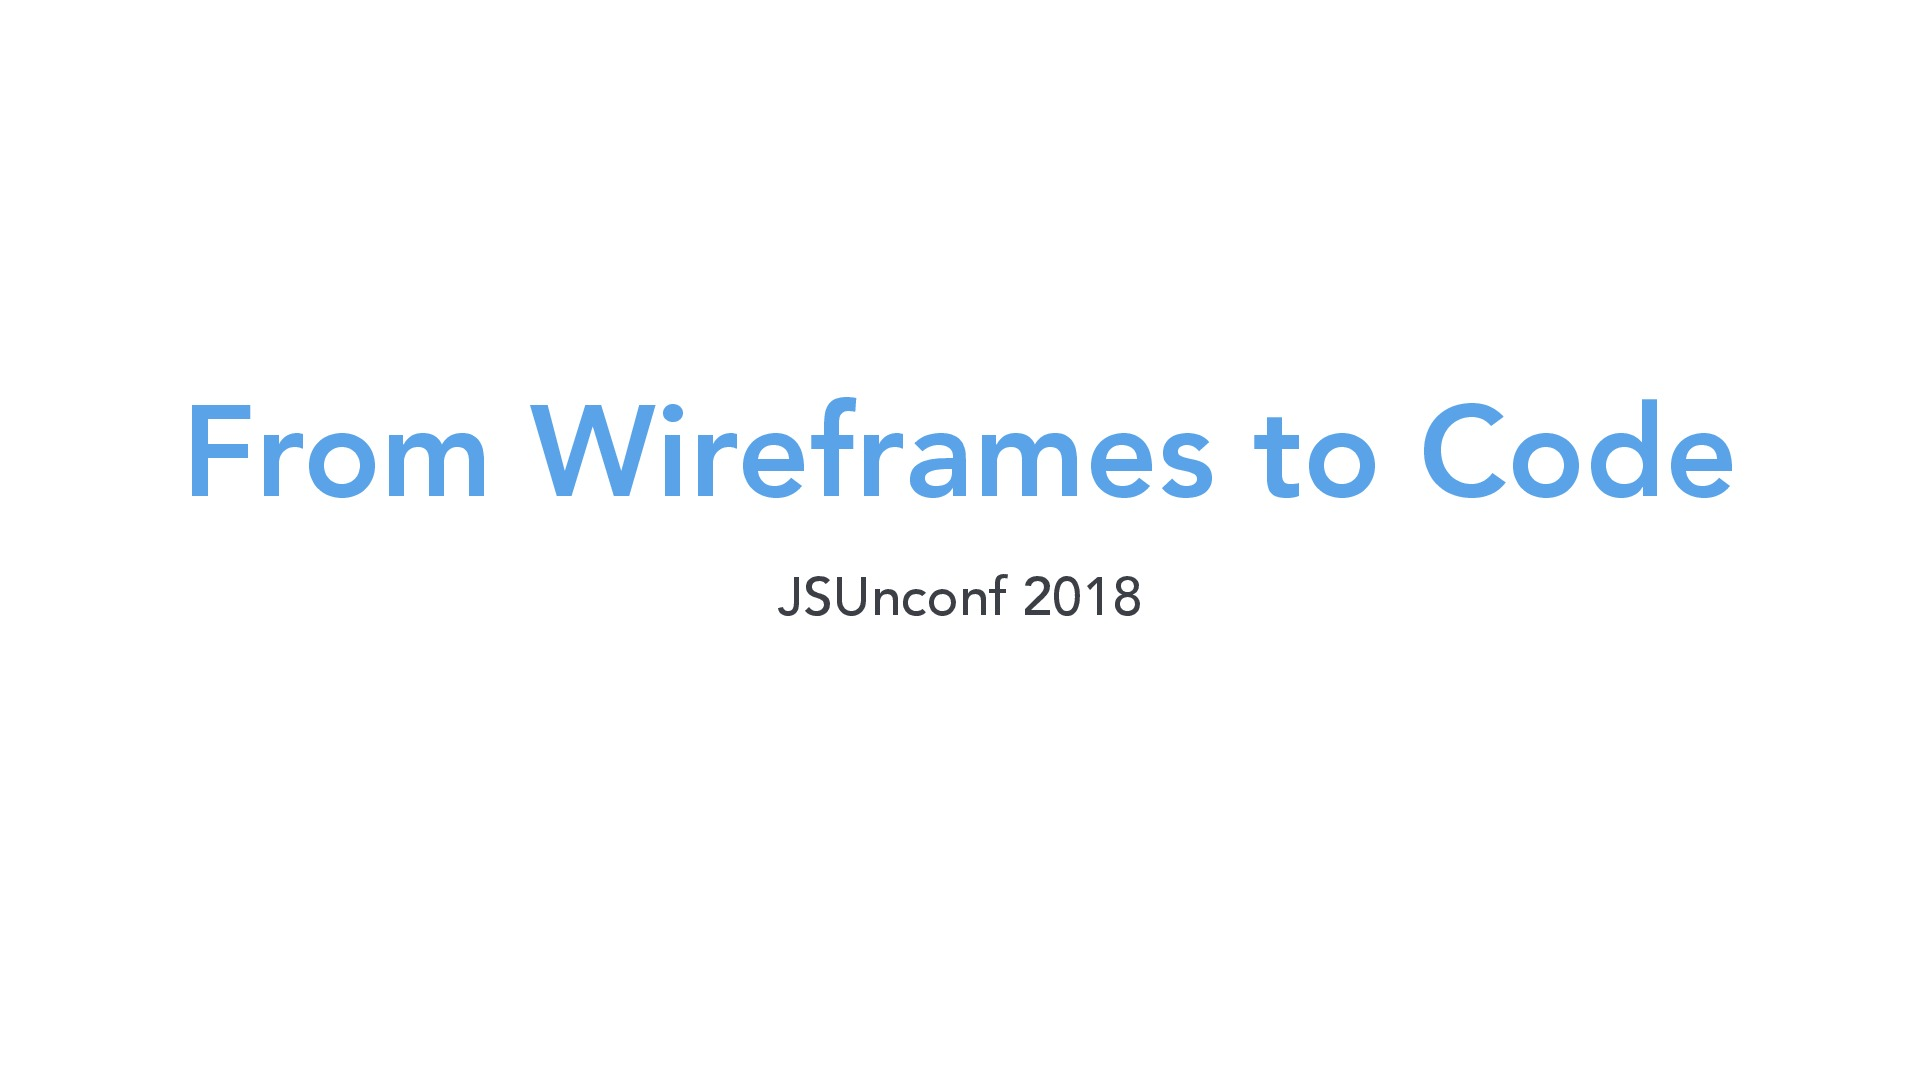 From wireframes to code